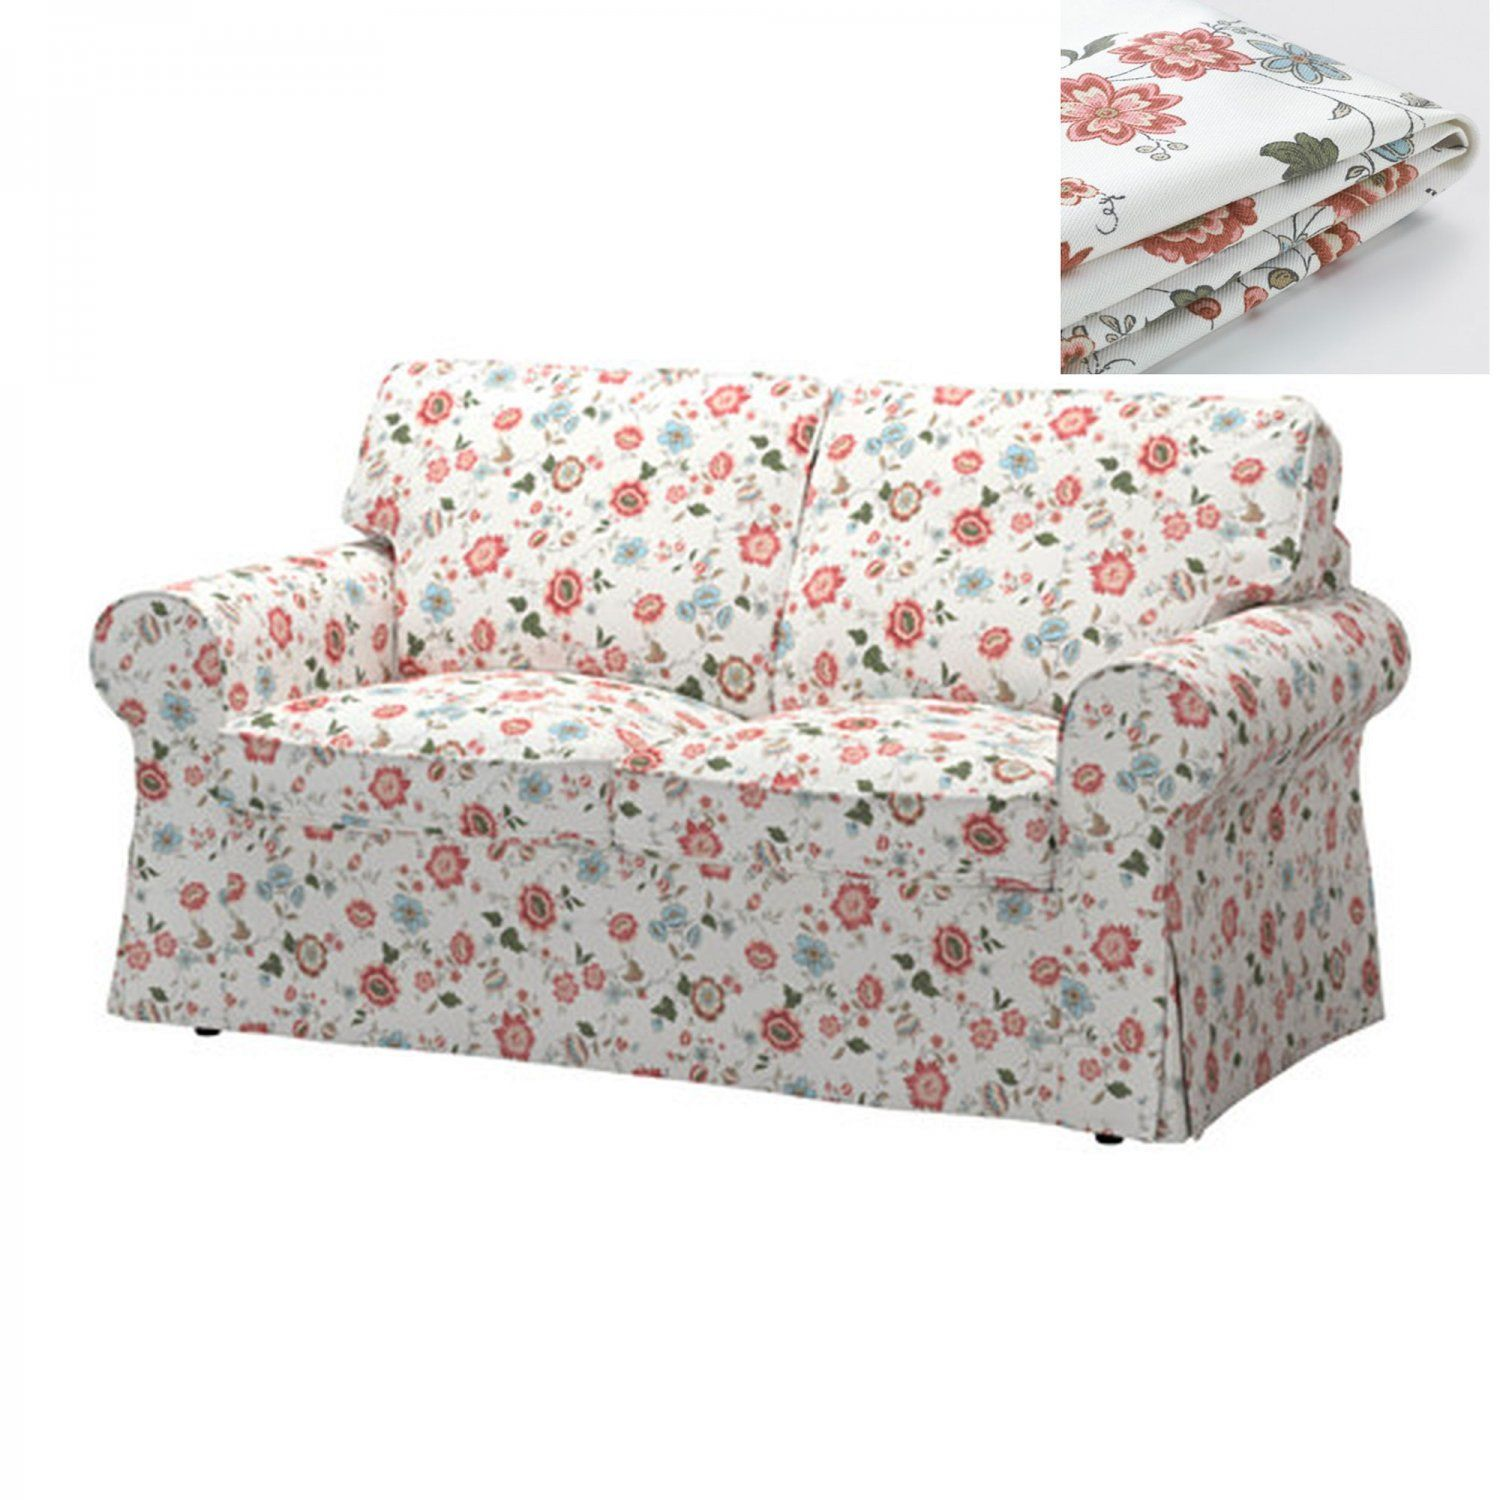 Incredible Ikea Ektorp 2 Seat Loveseat Sofa Cover Slipcover Videslund Gmtry Best Dining Table And Chair Ideas Images Gmtryco